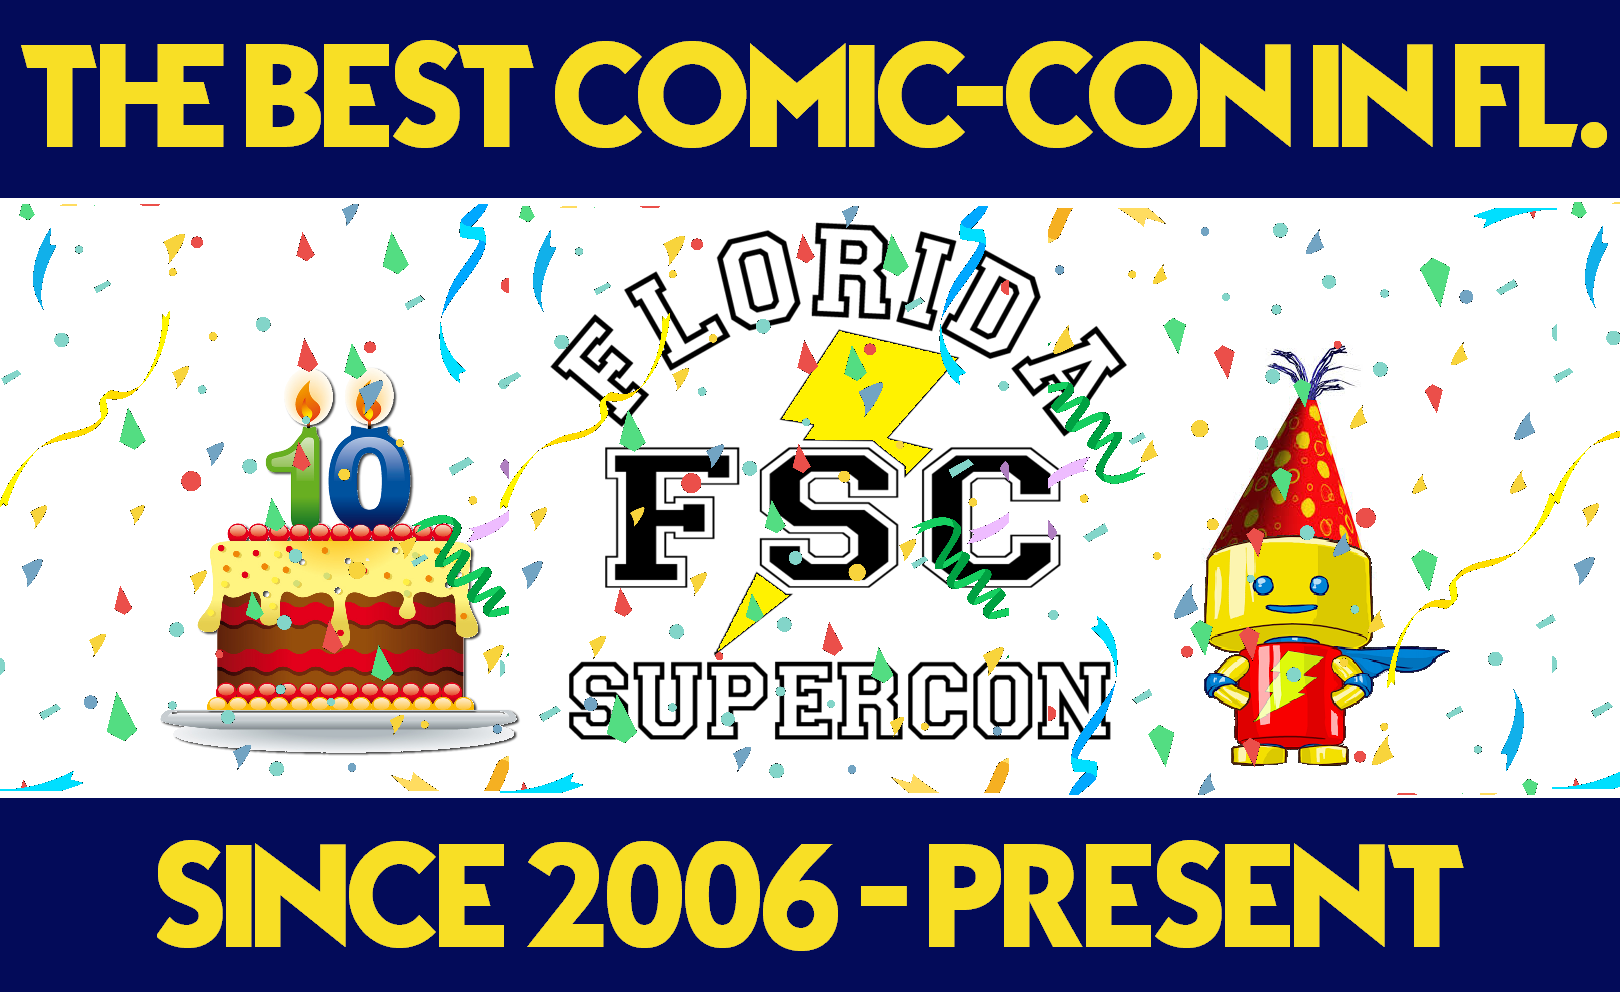 Florida Supercon: 10 Years of the Best Cosplay in Miami